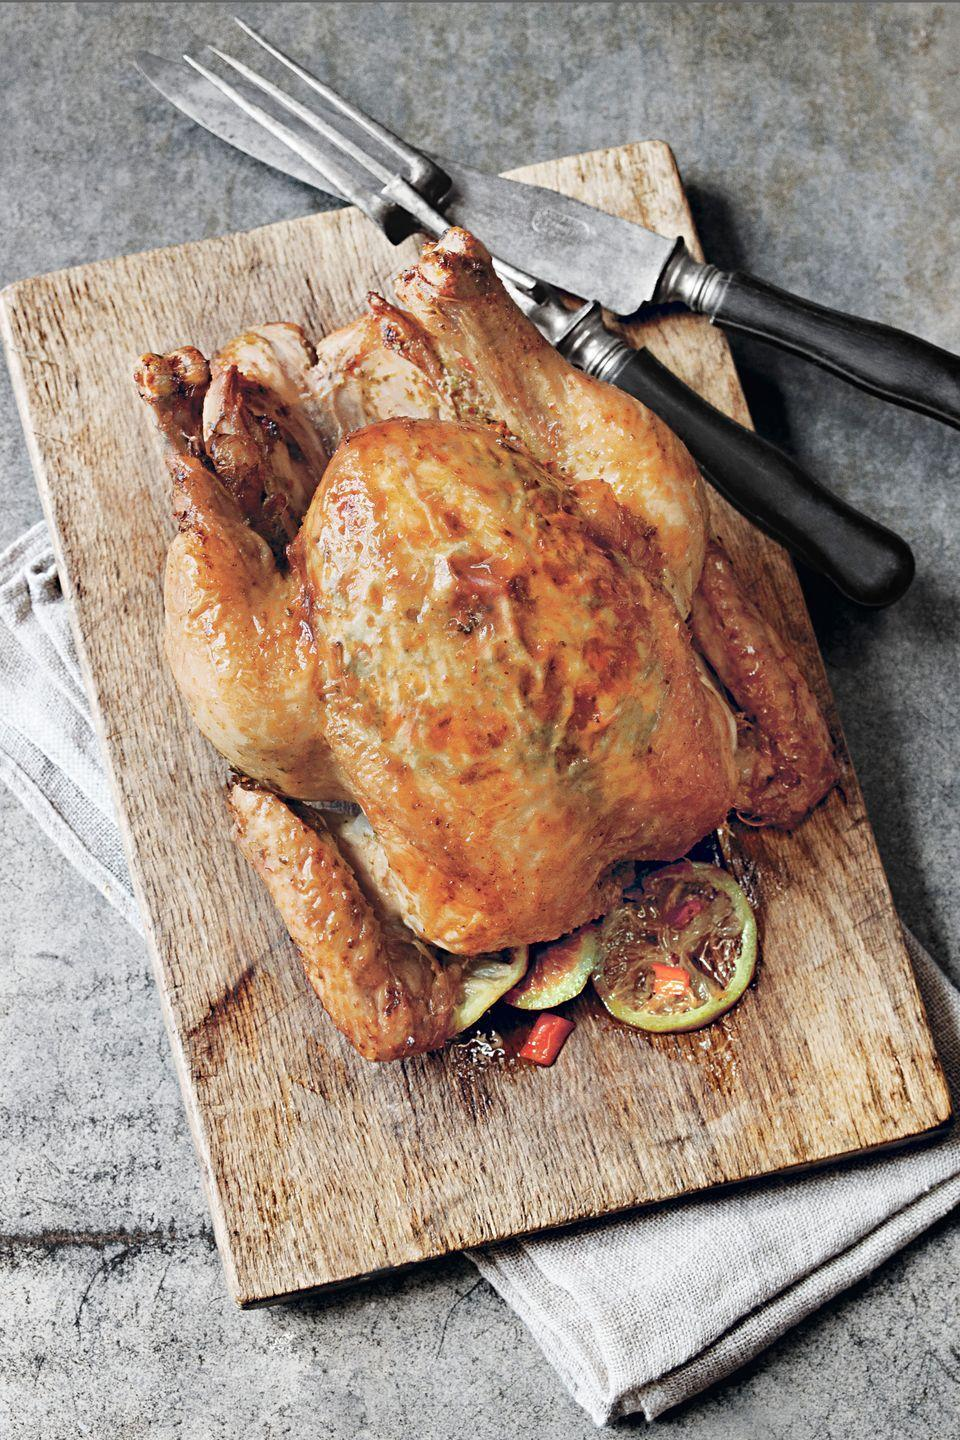 """<p>Succulent, golden-skinned chicken with cooked apples makes a memorable and mouthwatering meal.</p><p><strong><a href=""""https://www.countryliving.com/food-drinks/recipes/a1041/apple-sage-roastedchicken-panjuices-3148/"""" rel=""""nofollow noopener"""" target=""""_blank"""" data-ylk=""""slk:Get the recipe"""" class=""""link rapid-noclick-resp"""">Get the recipe</a>.</strong></p>"""